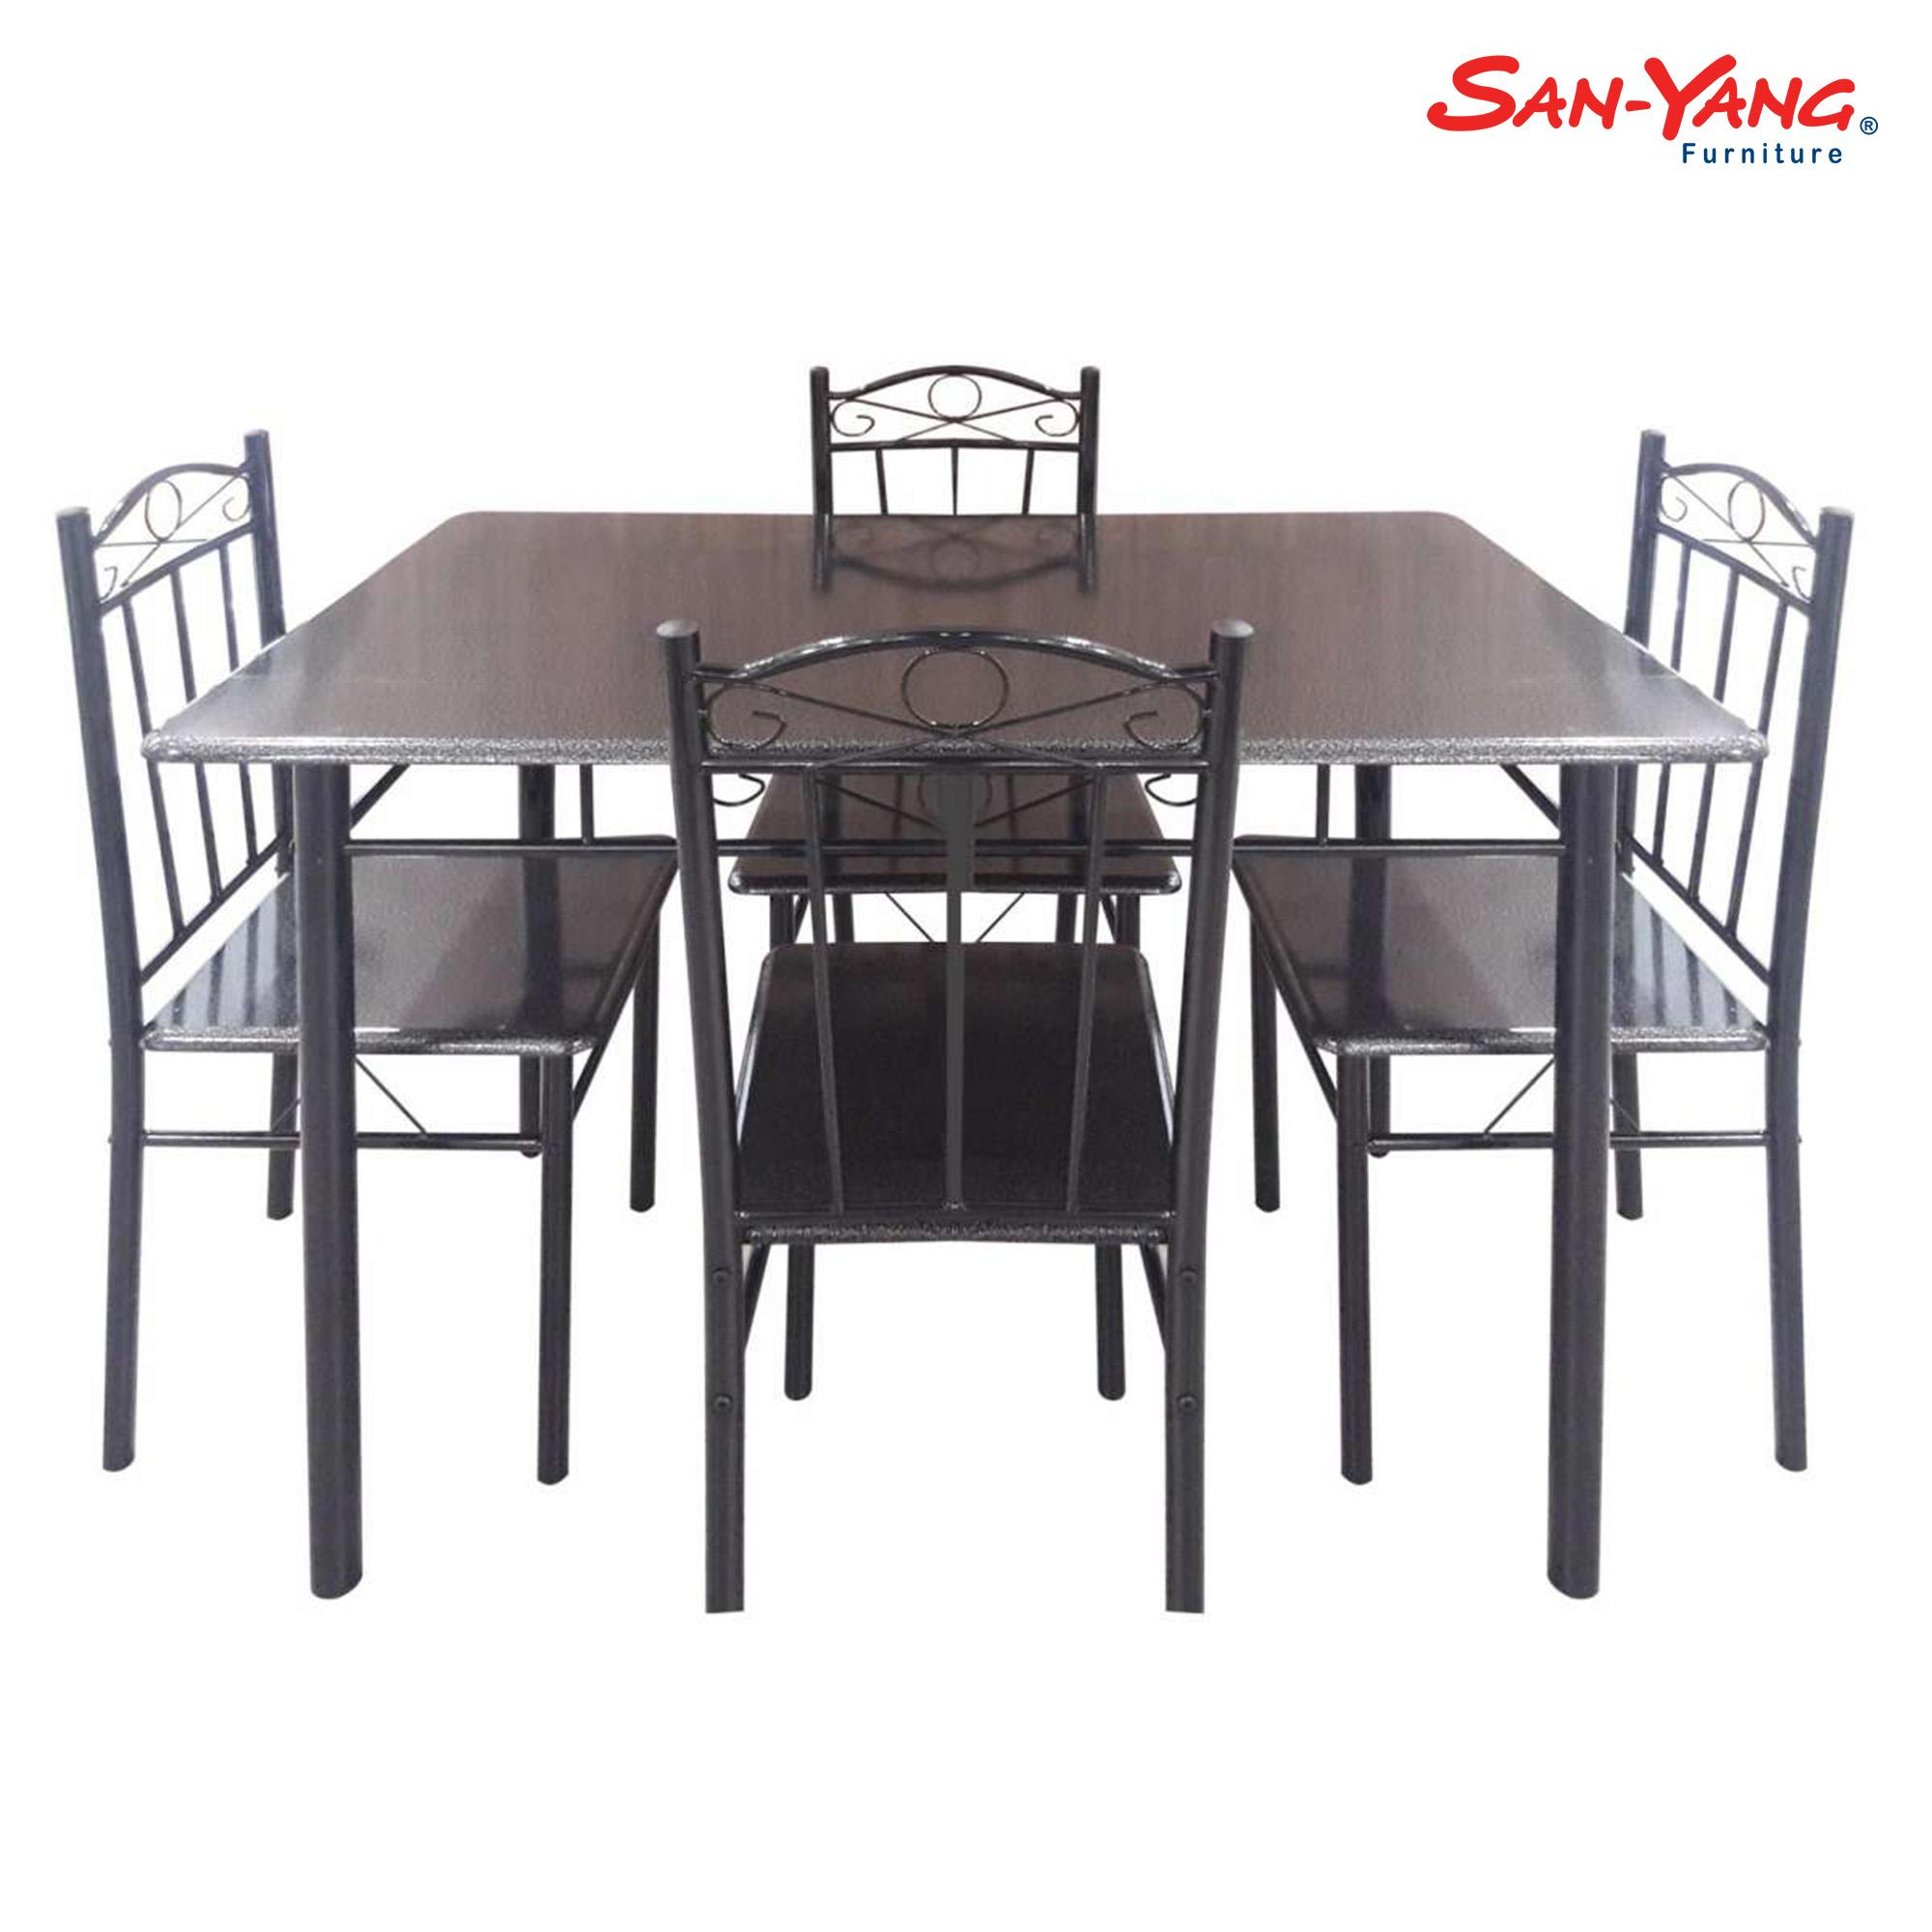 Miraculous San Yang Dining Set Fds12024S Download Free Architecture Designs Intelgarnamadebymaigaardcom